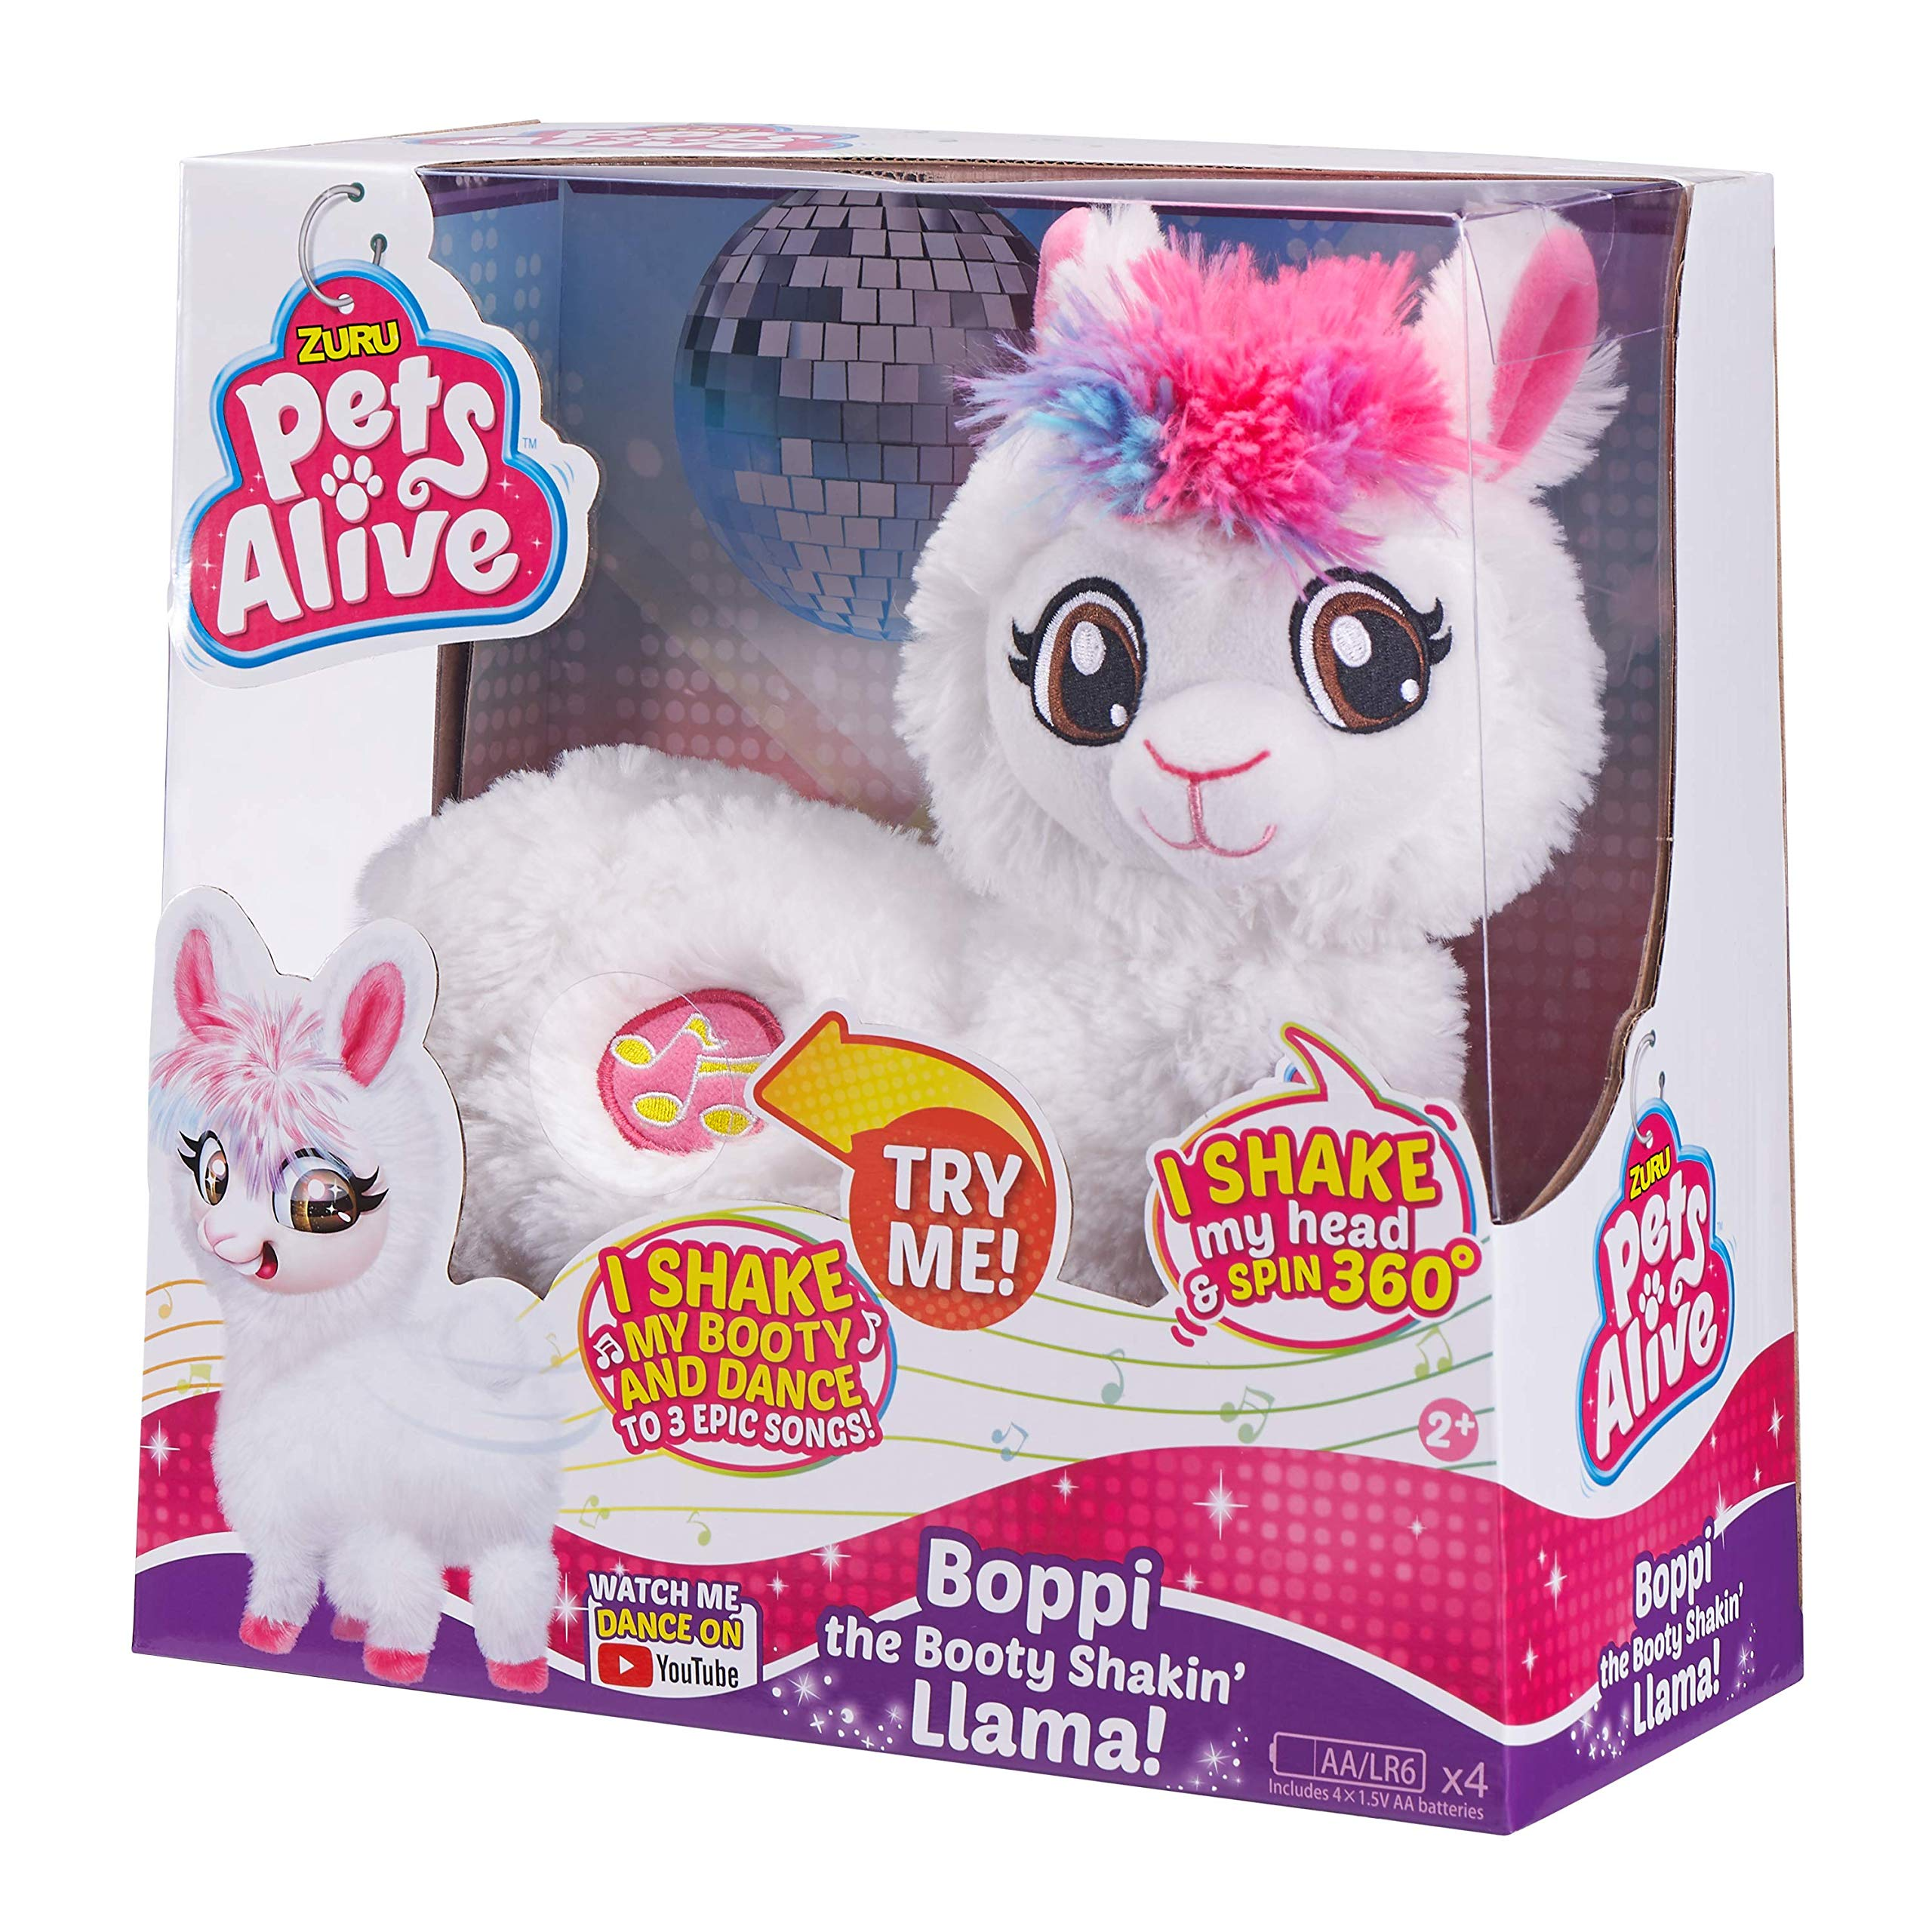 Pets Alive Boppi The Booty Shakin Llama Battery-Powered Dancing Robotic Toy by Zuru by Pets Alive (Image #2)